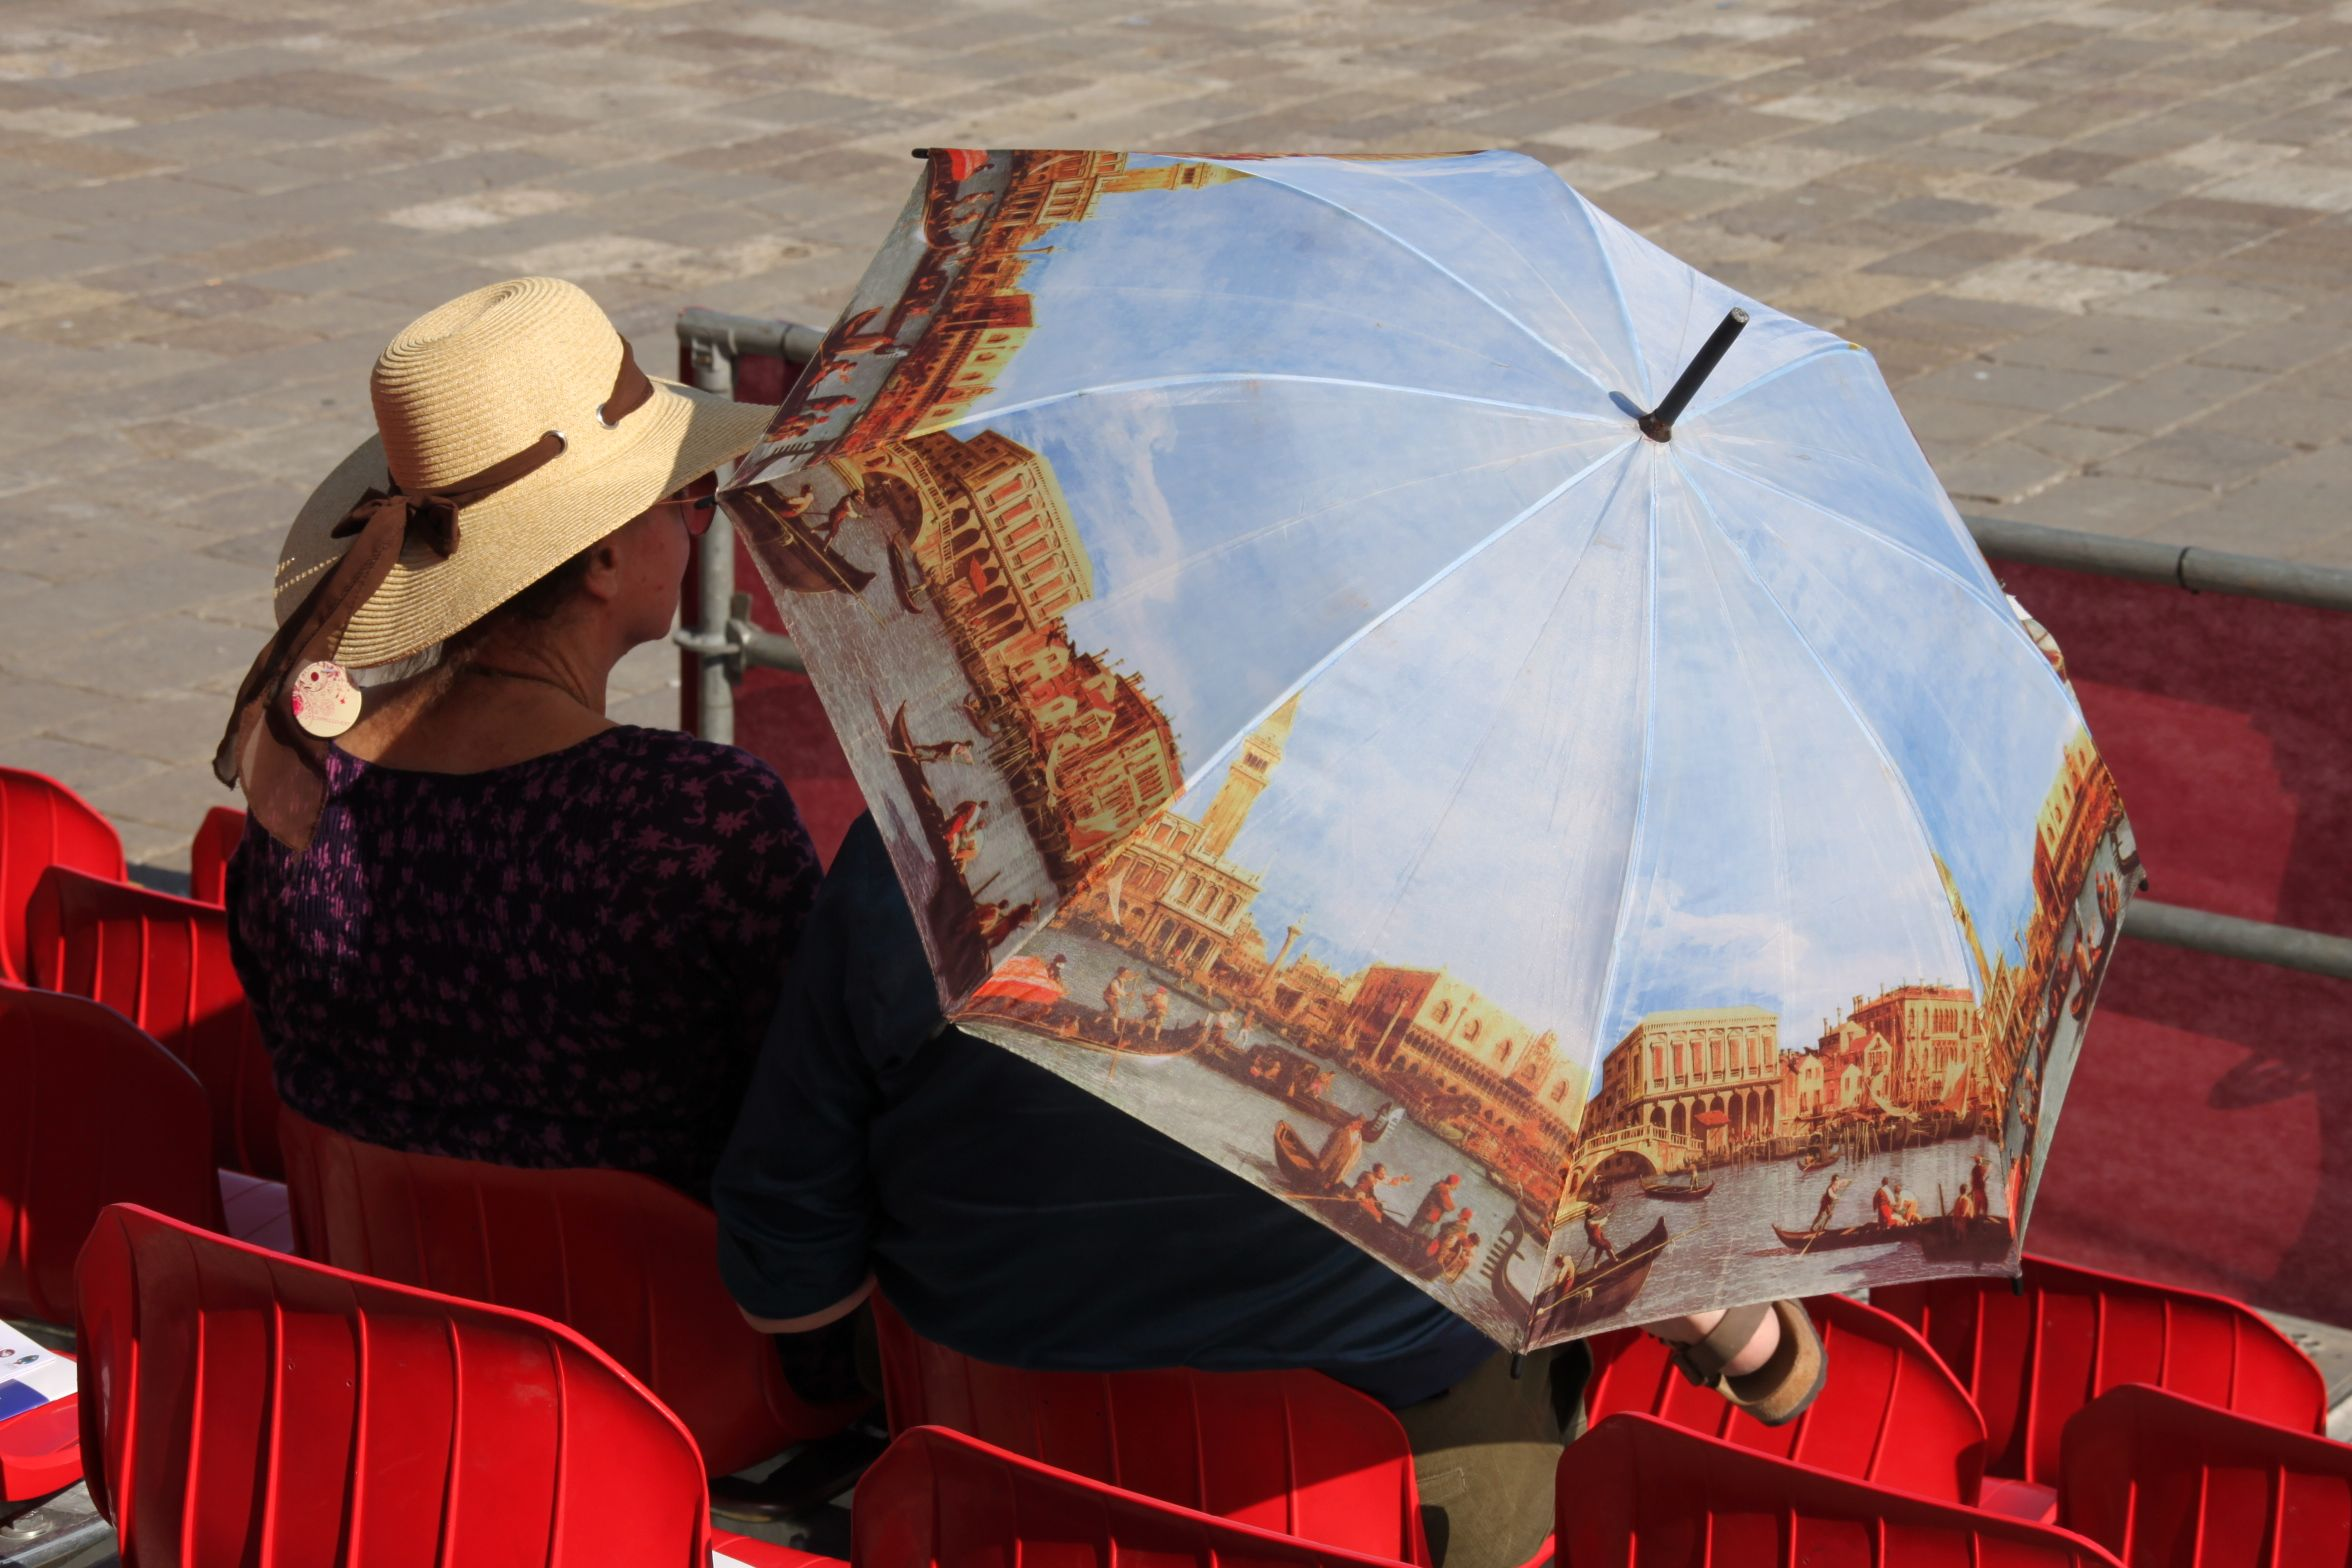 Photo of a couple sheltering from the afternoon sun under a sun-hat and umbrella